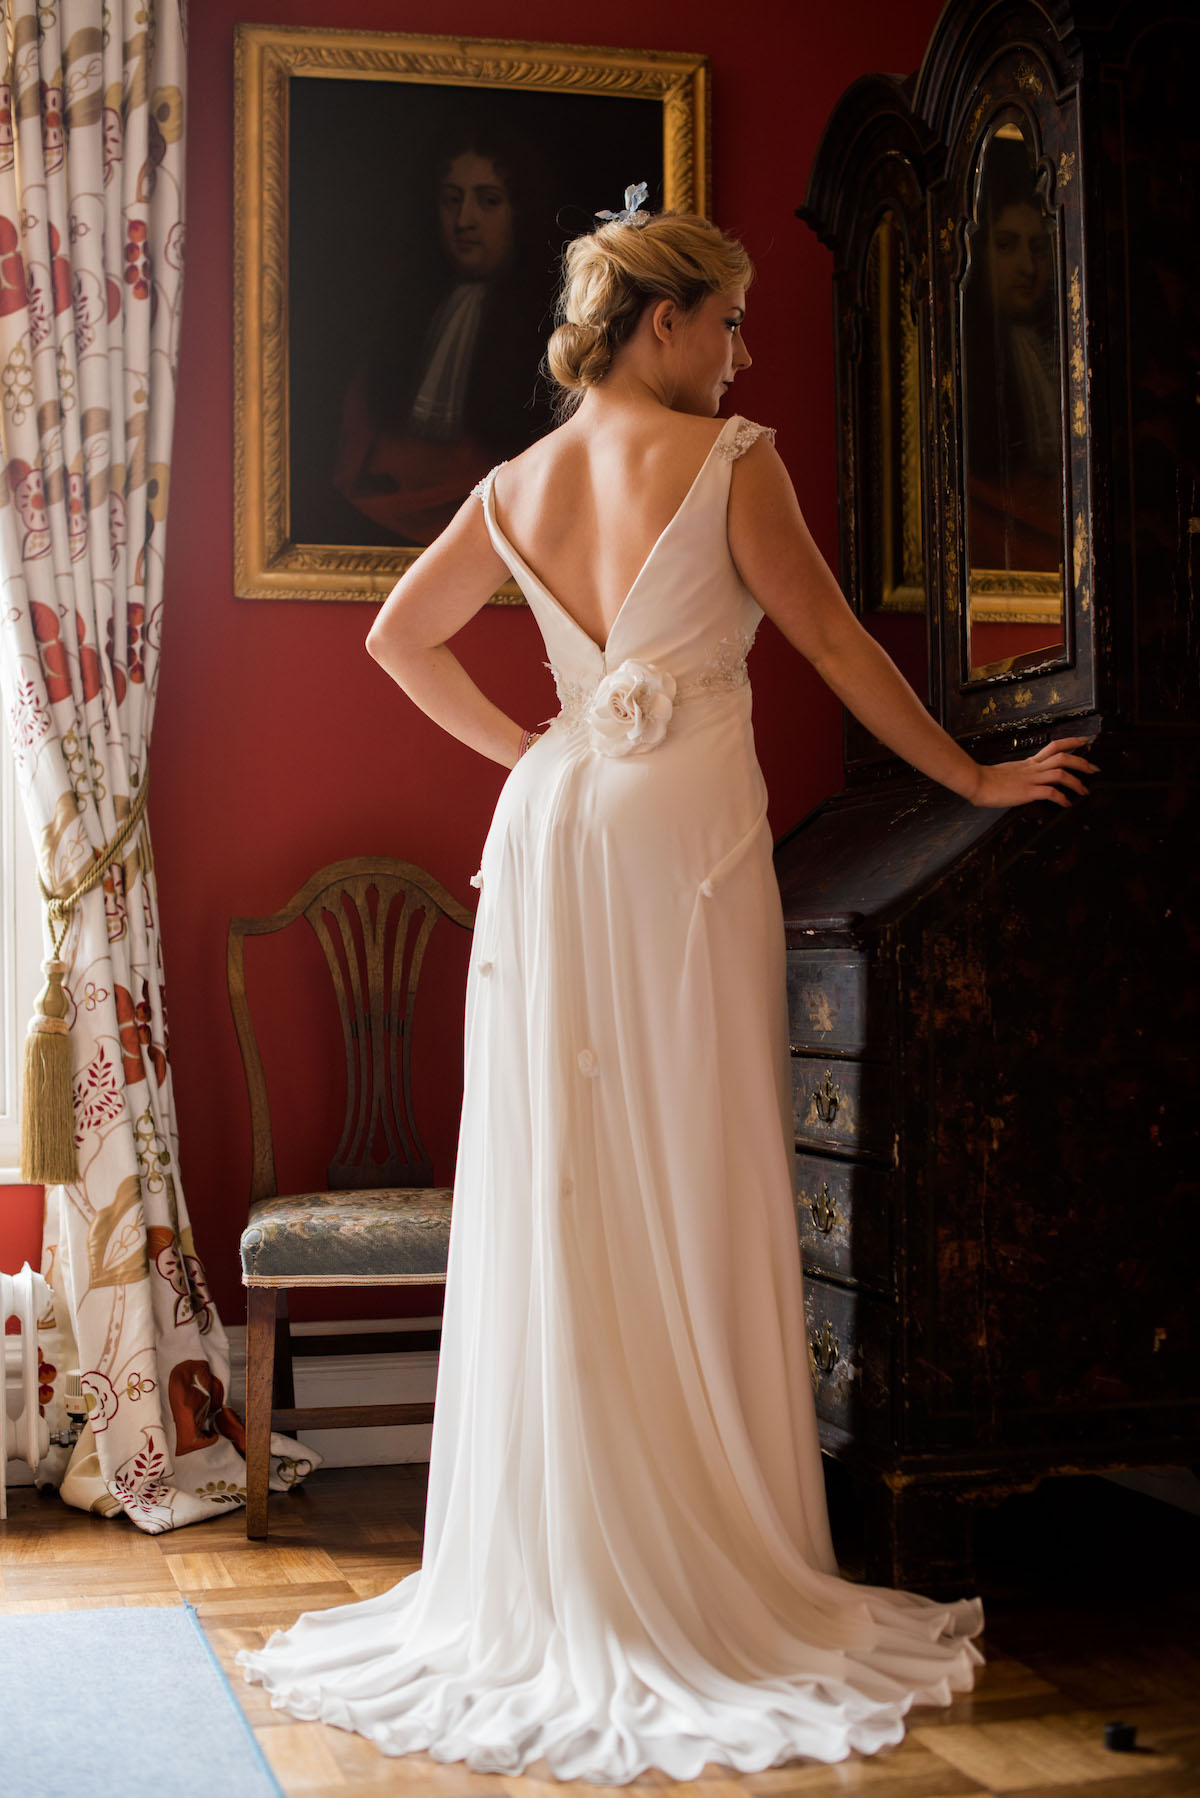 CLASSIC ELEGANT BRIDAL LOOK NORFOLK